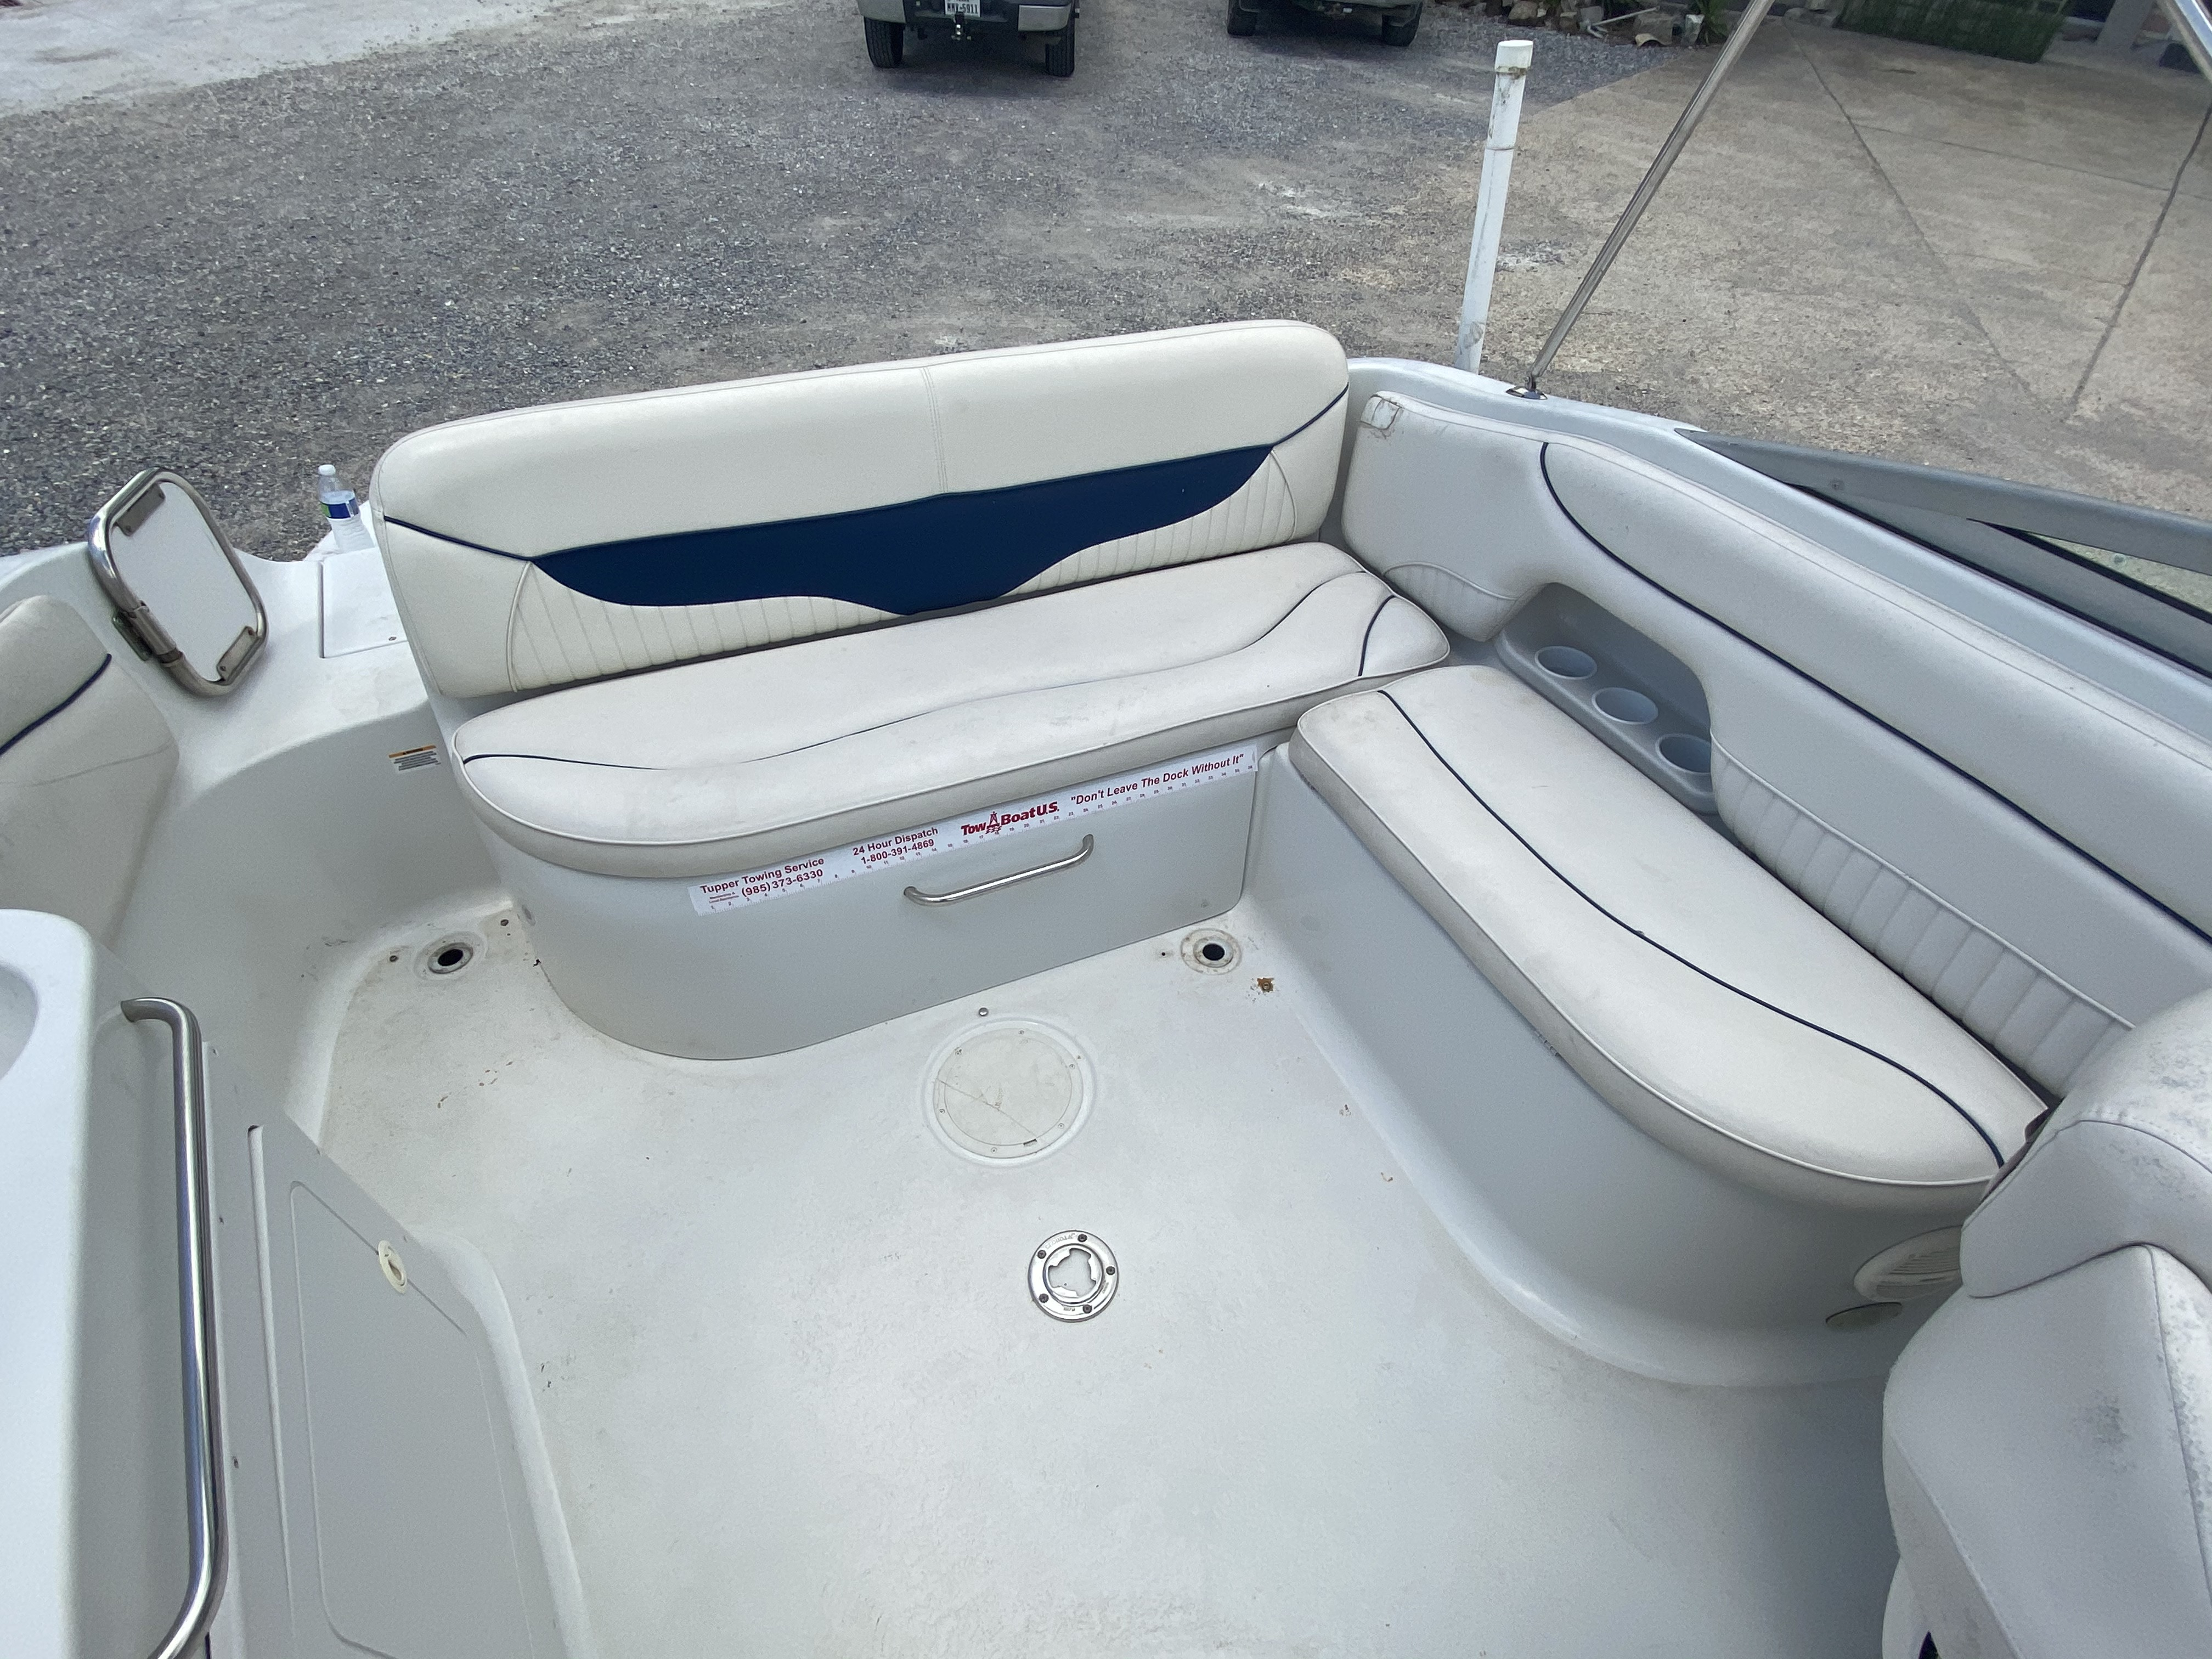 2005 Crownline boat for sale, model of the boat is 236 & Image # 17 of 17